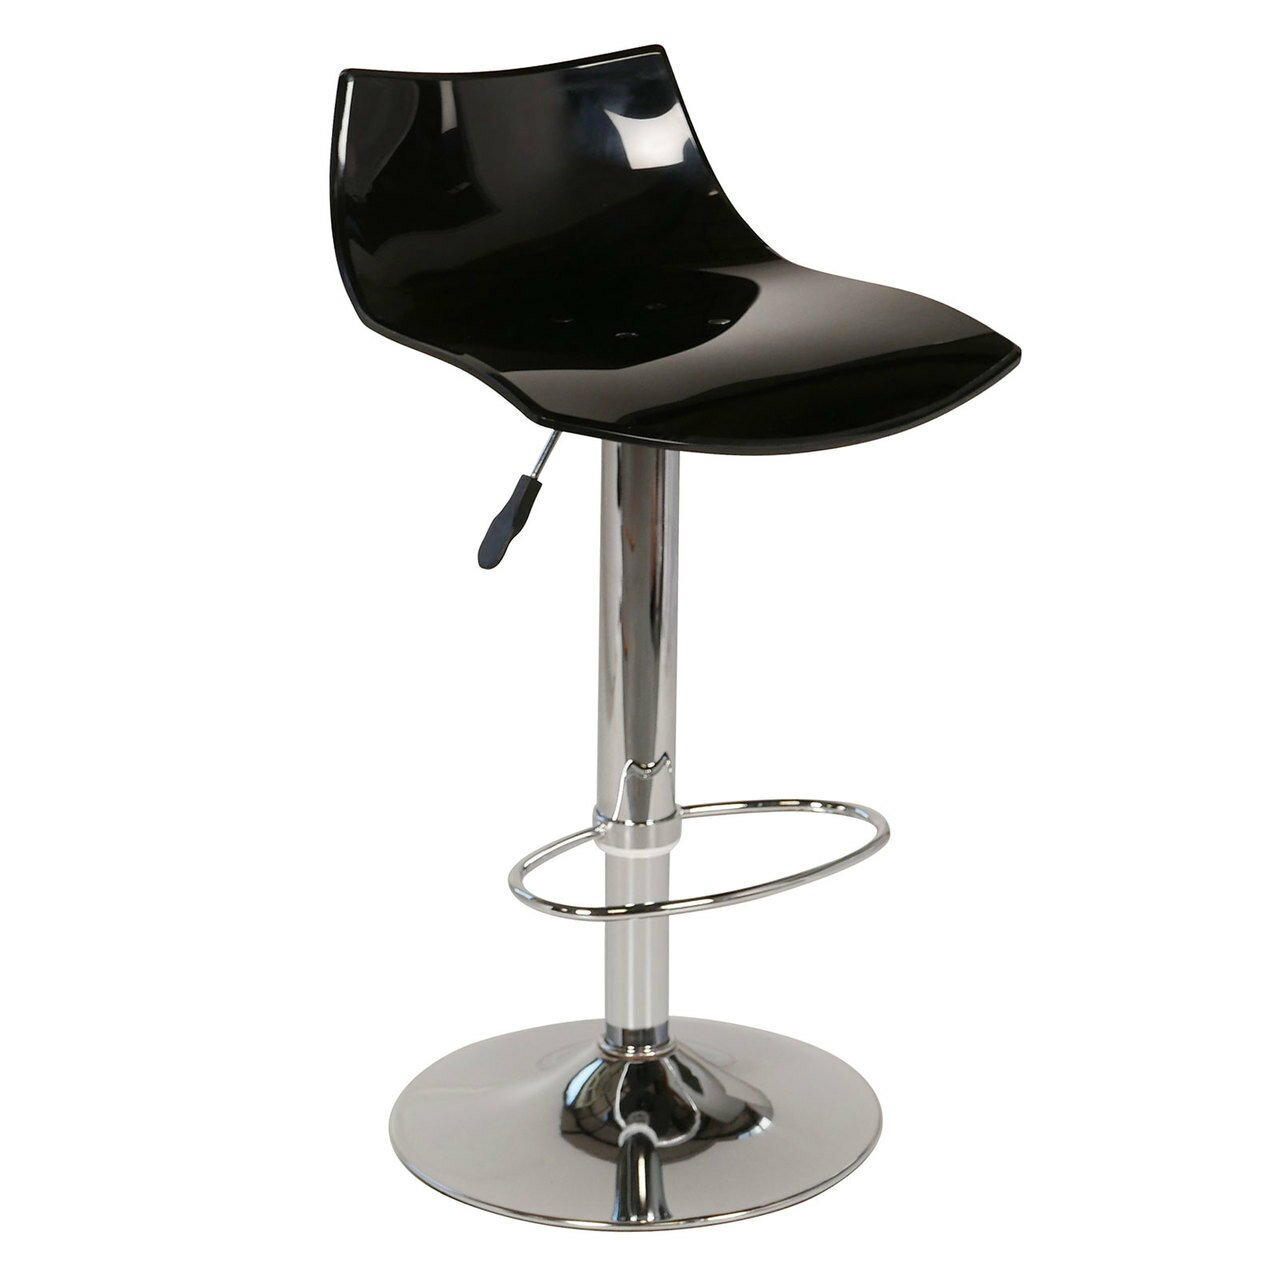 Counter Height Acrylic Stools : Joseph Allen Lucite Adjustable Height Swivel Bar Stool Wayfair.ca